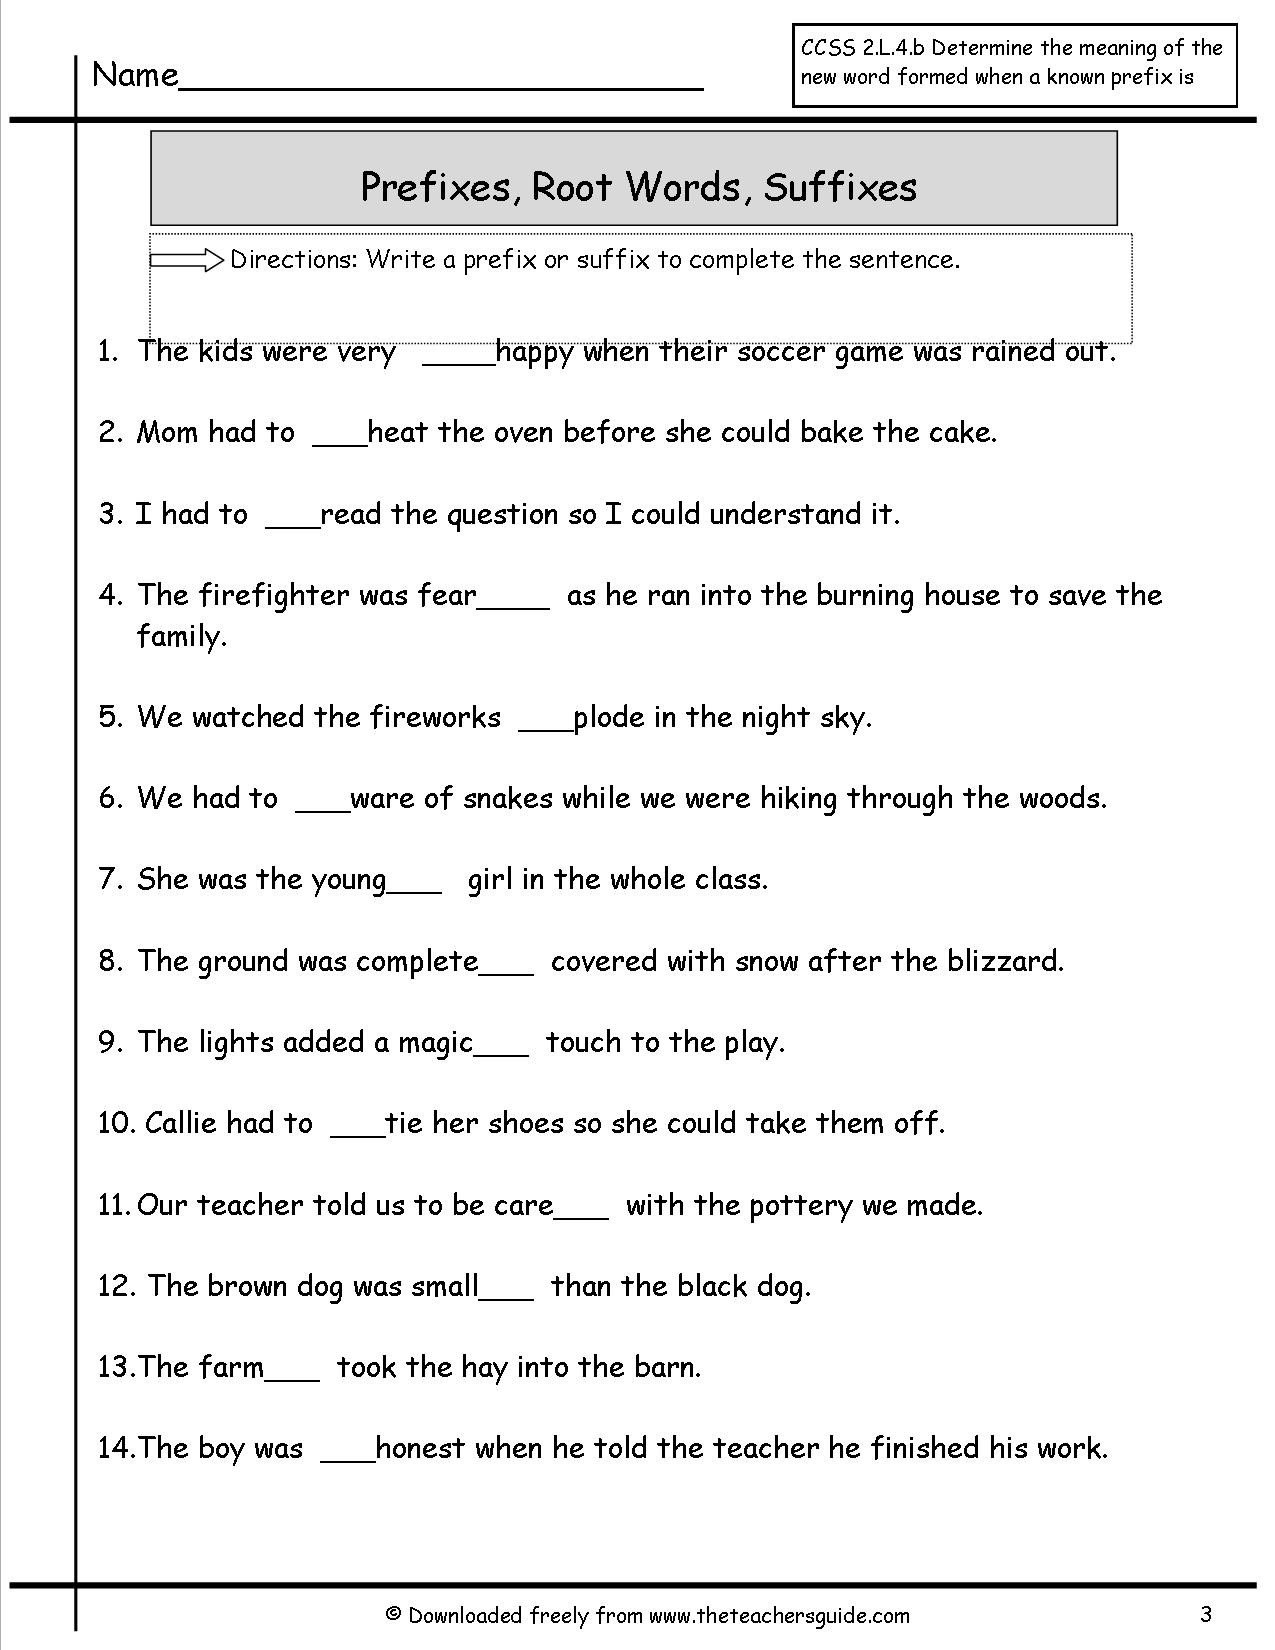 Suffixes Worksheets Free Awesome Prefixes and Suffixes Worksheet